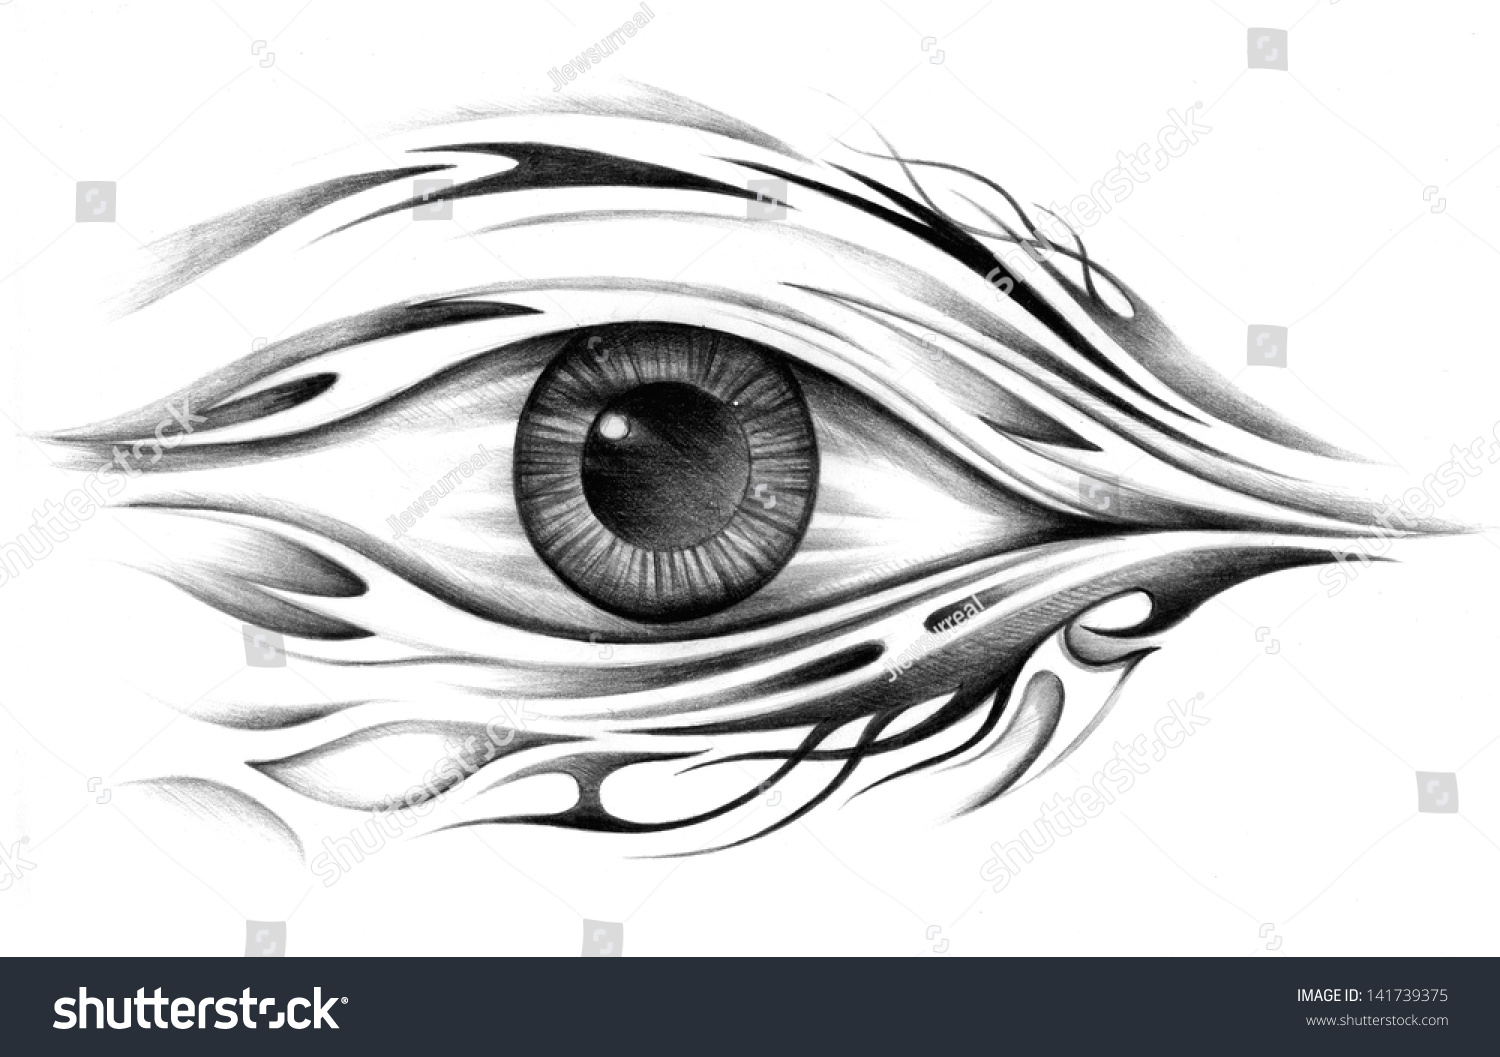 Art surreal eye tattoo drawing on paper 141739375